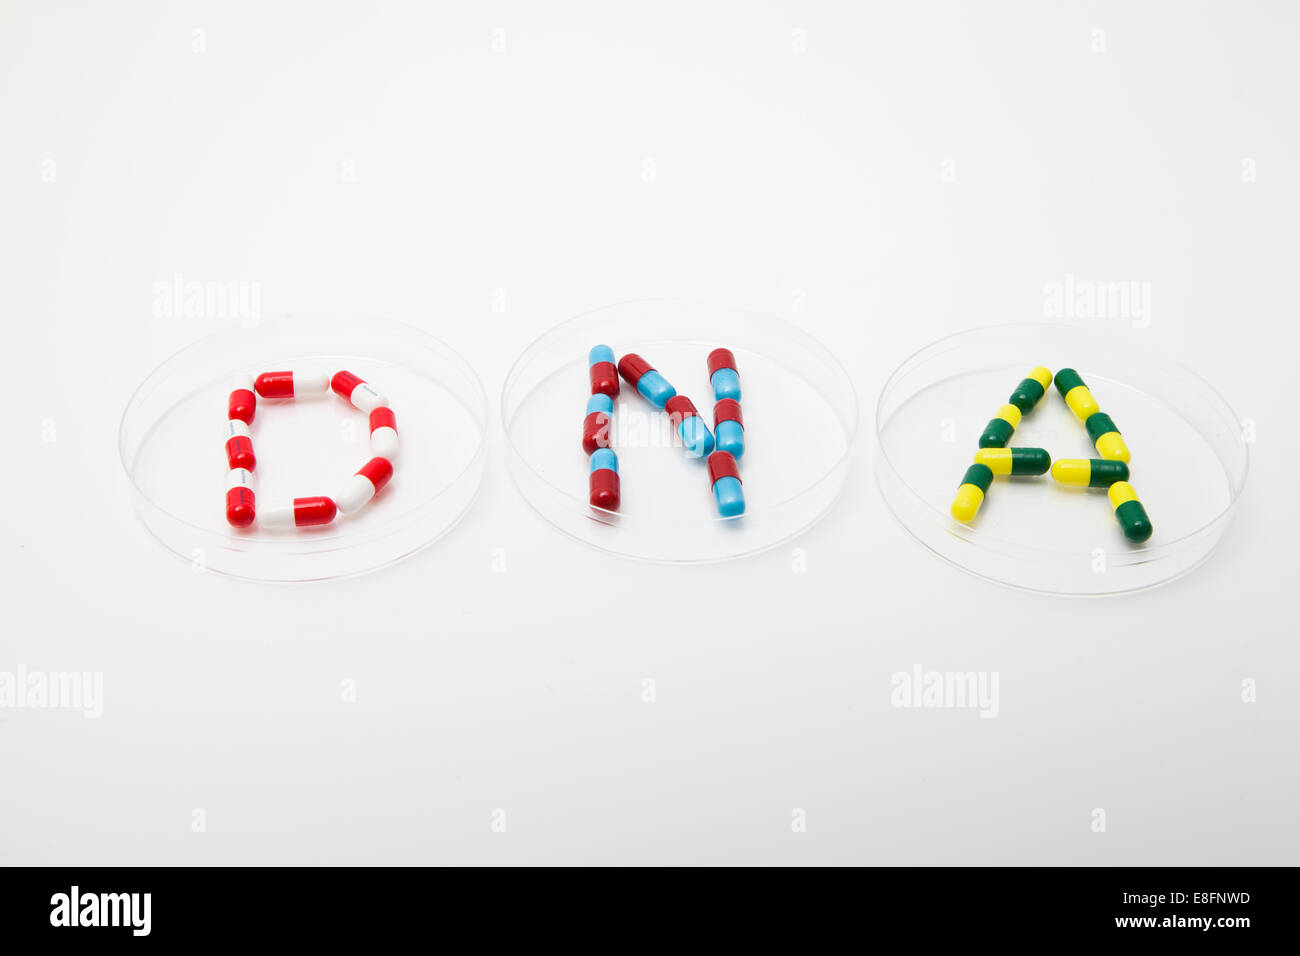 Word DNA made up of pills in petri dishes - Stock Image